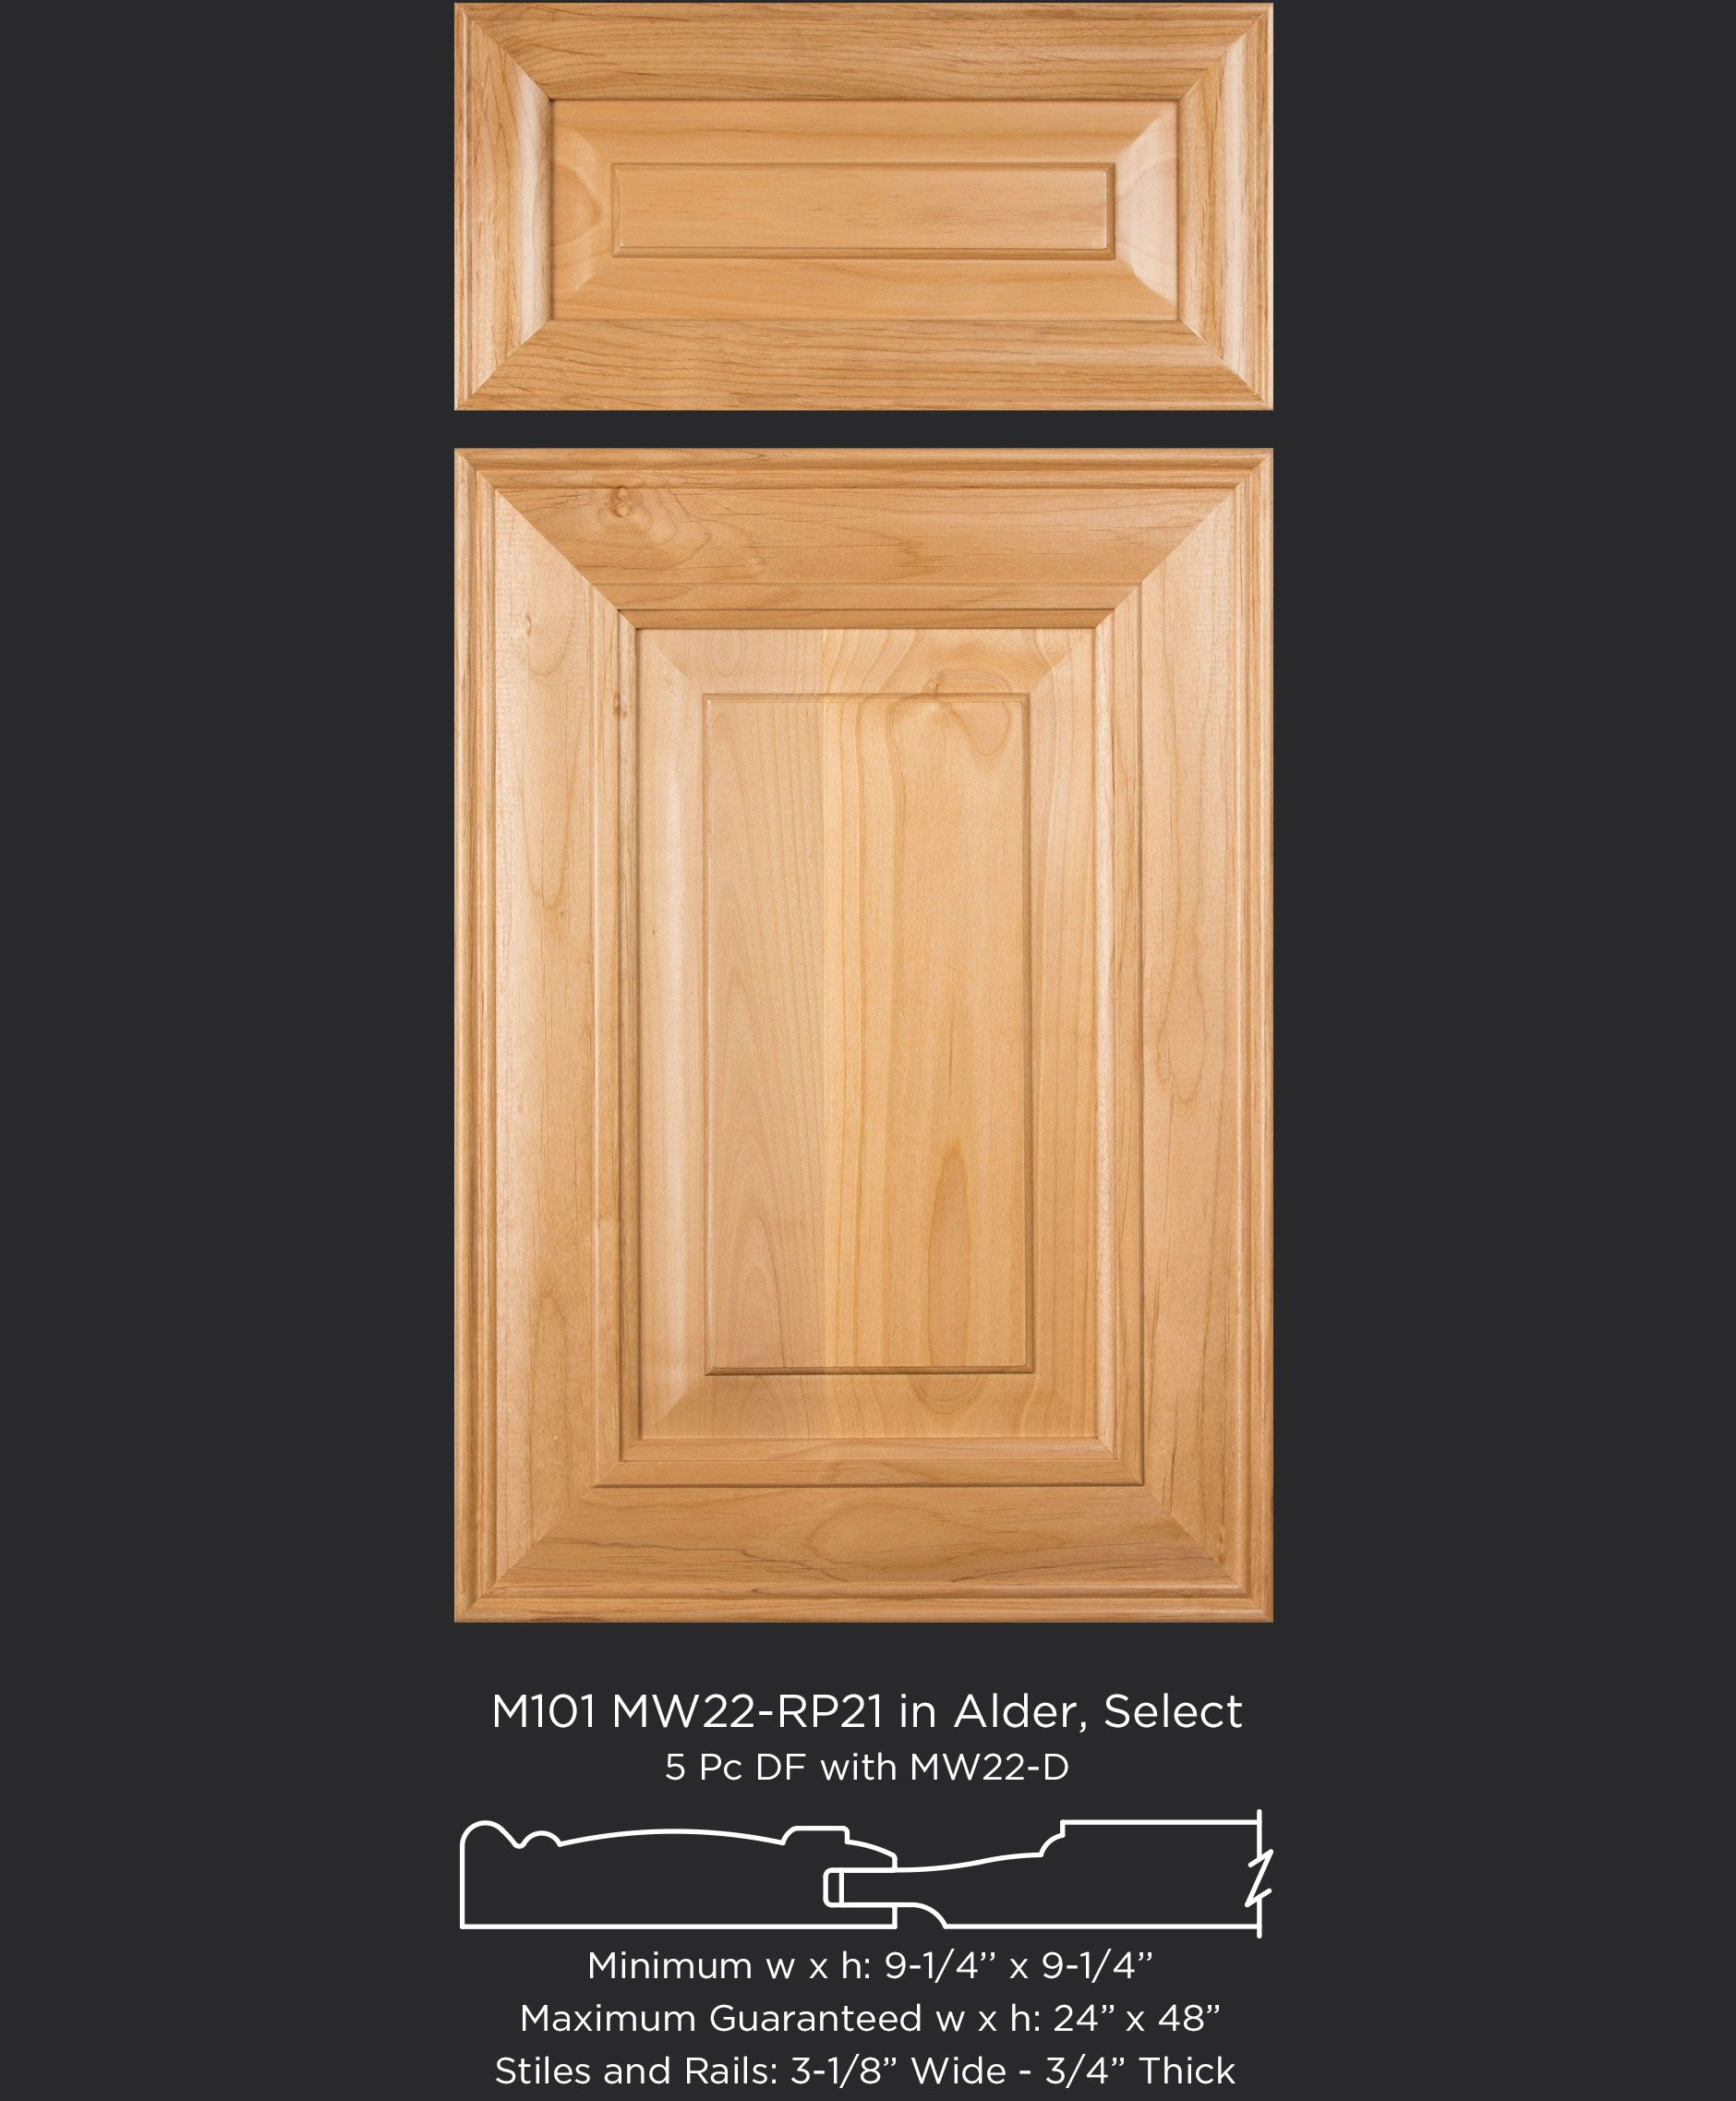 M101 Mw22 Rp21 Alder Select Taylorcraft Cabinet Door Company Cabinet Doors Alder Cabinets Raised Panel